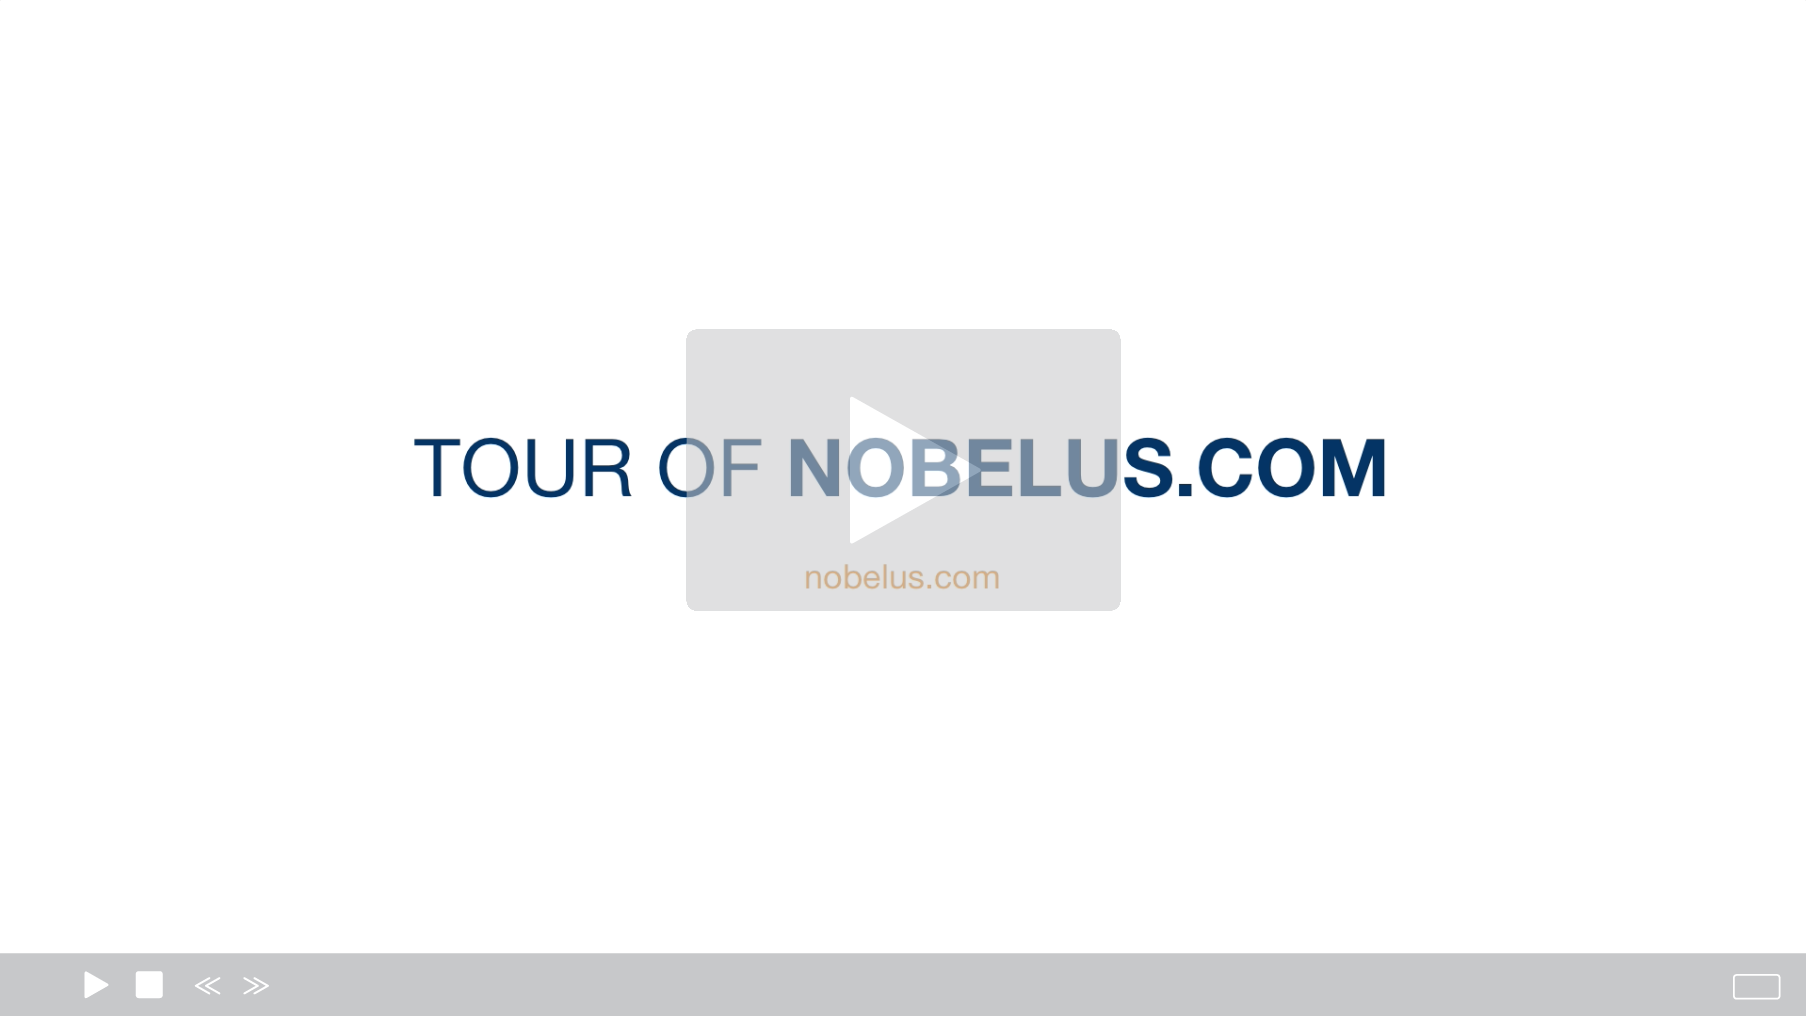 Tour of Nobelus.com